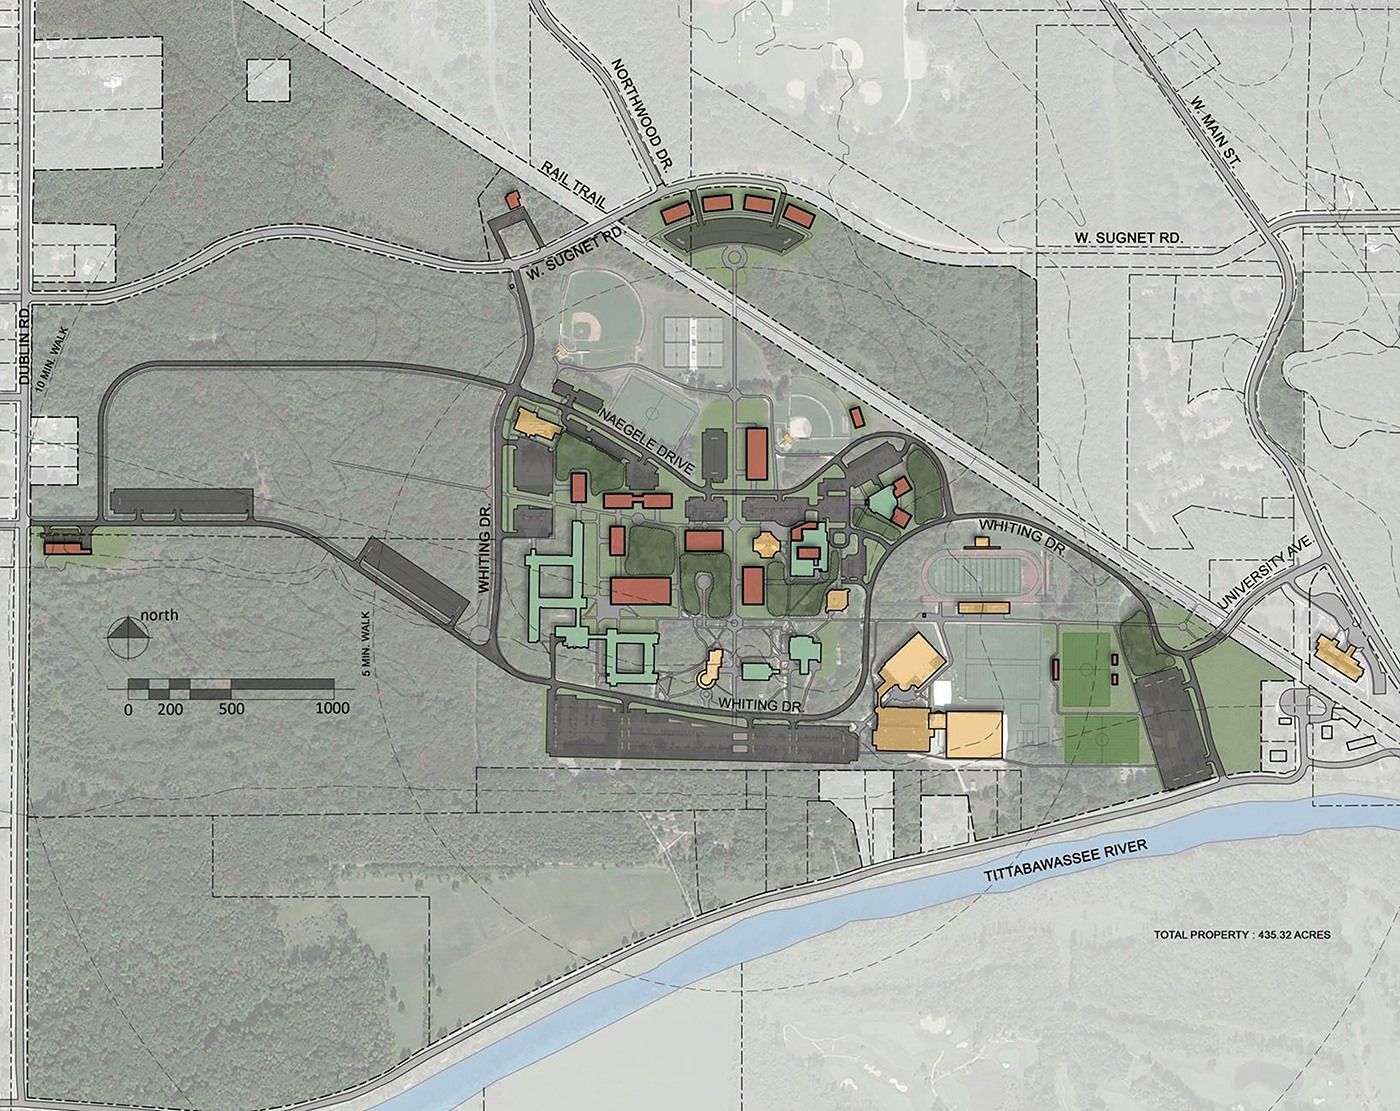 HigherEd Northwood University Master Plan